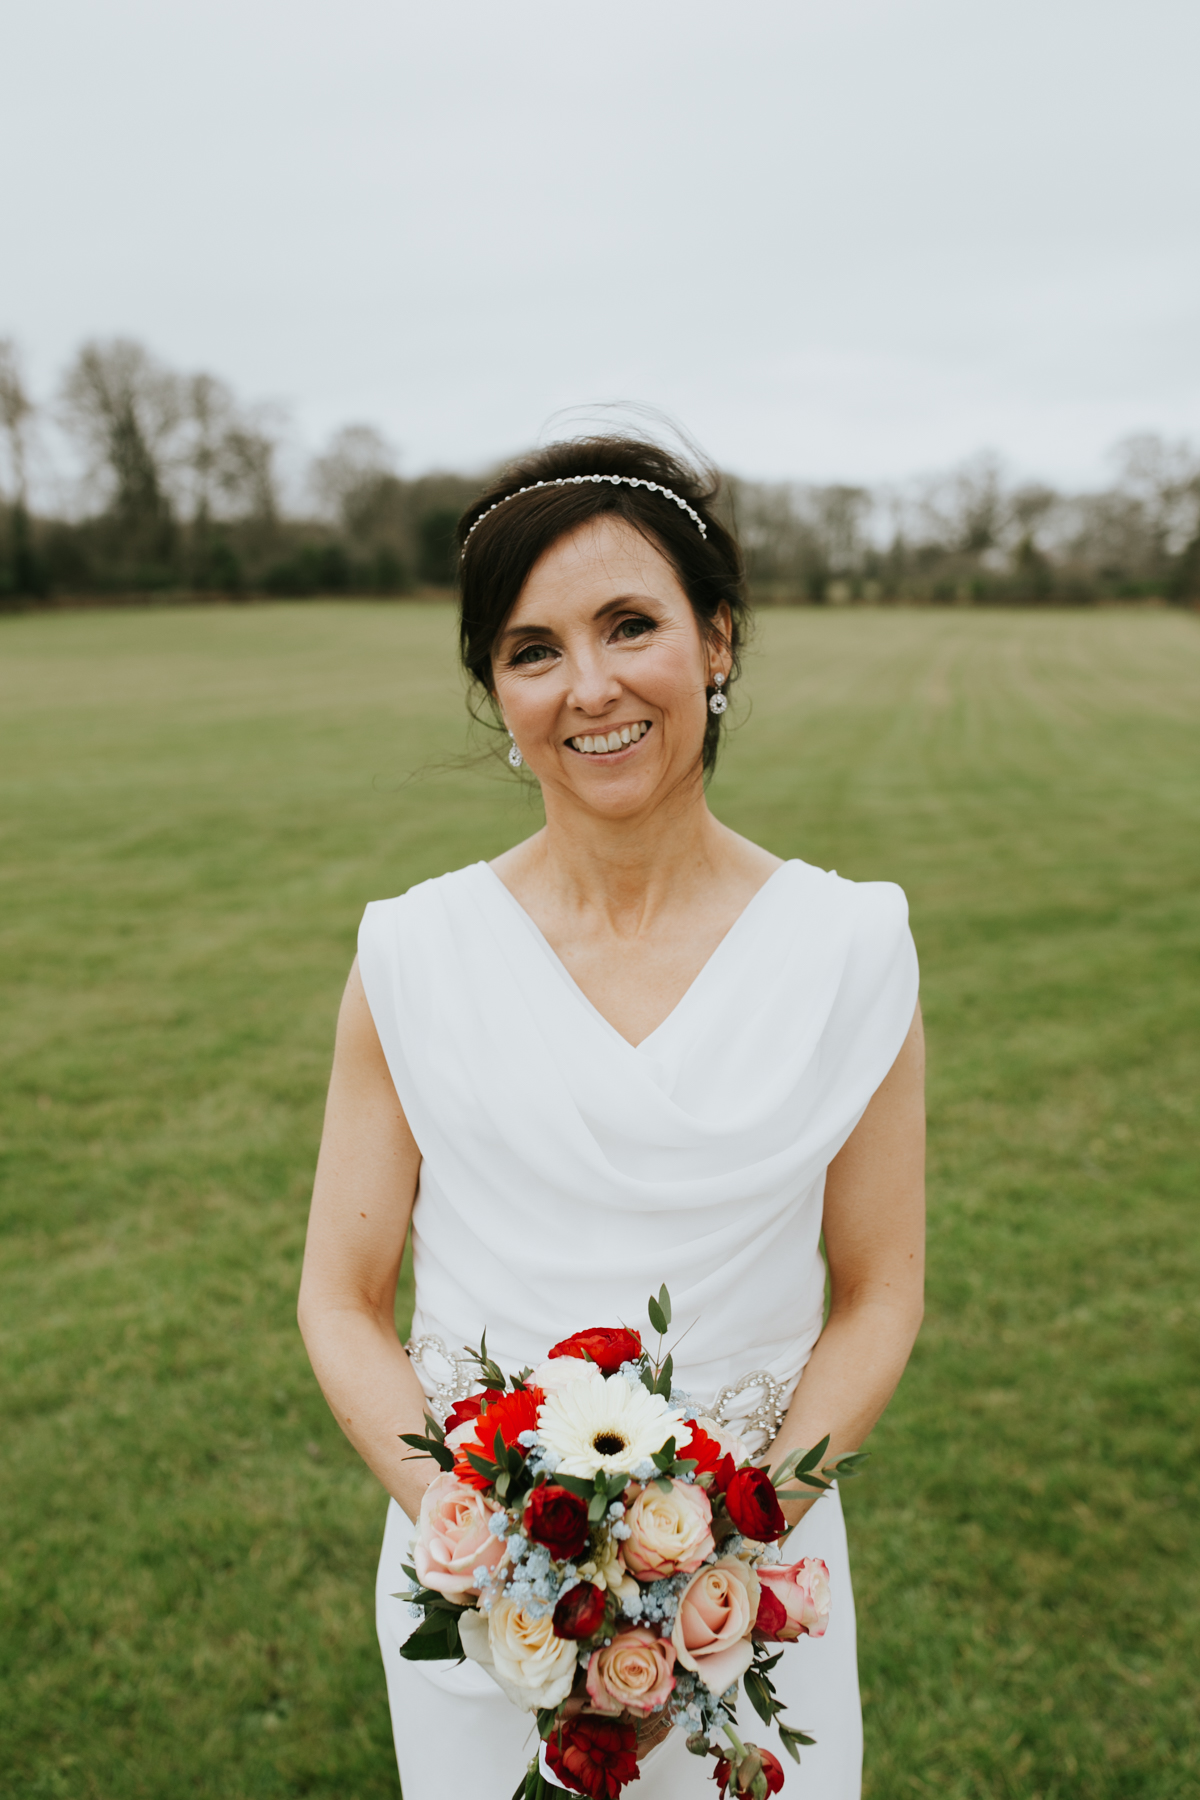 liviafigueiredo_weddingphotography_boyne_hill_house_estate_359.jpg